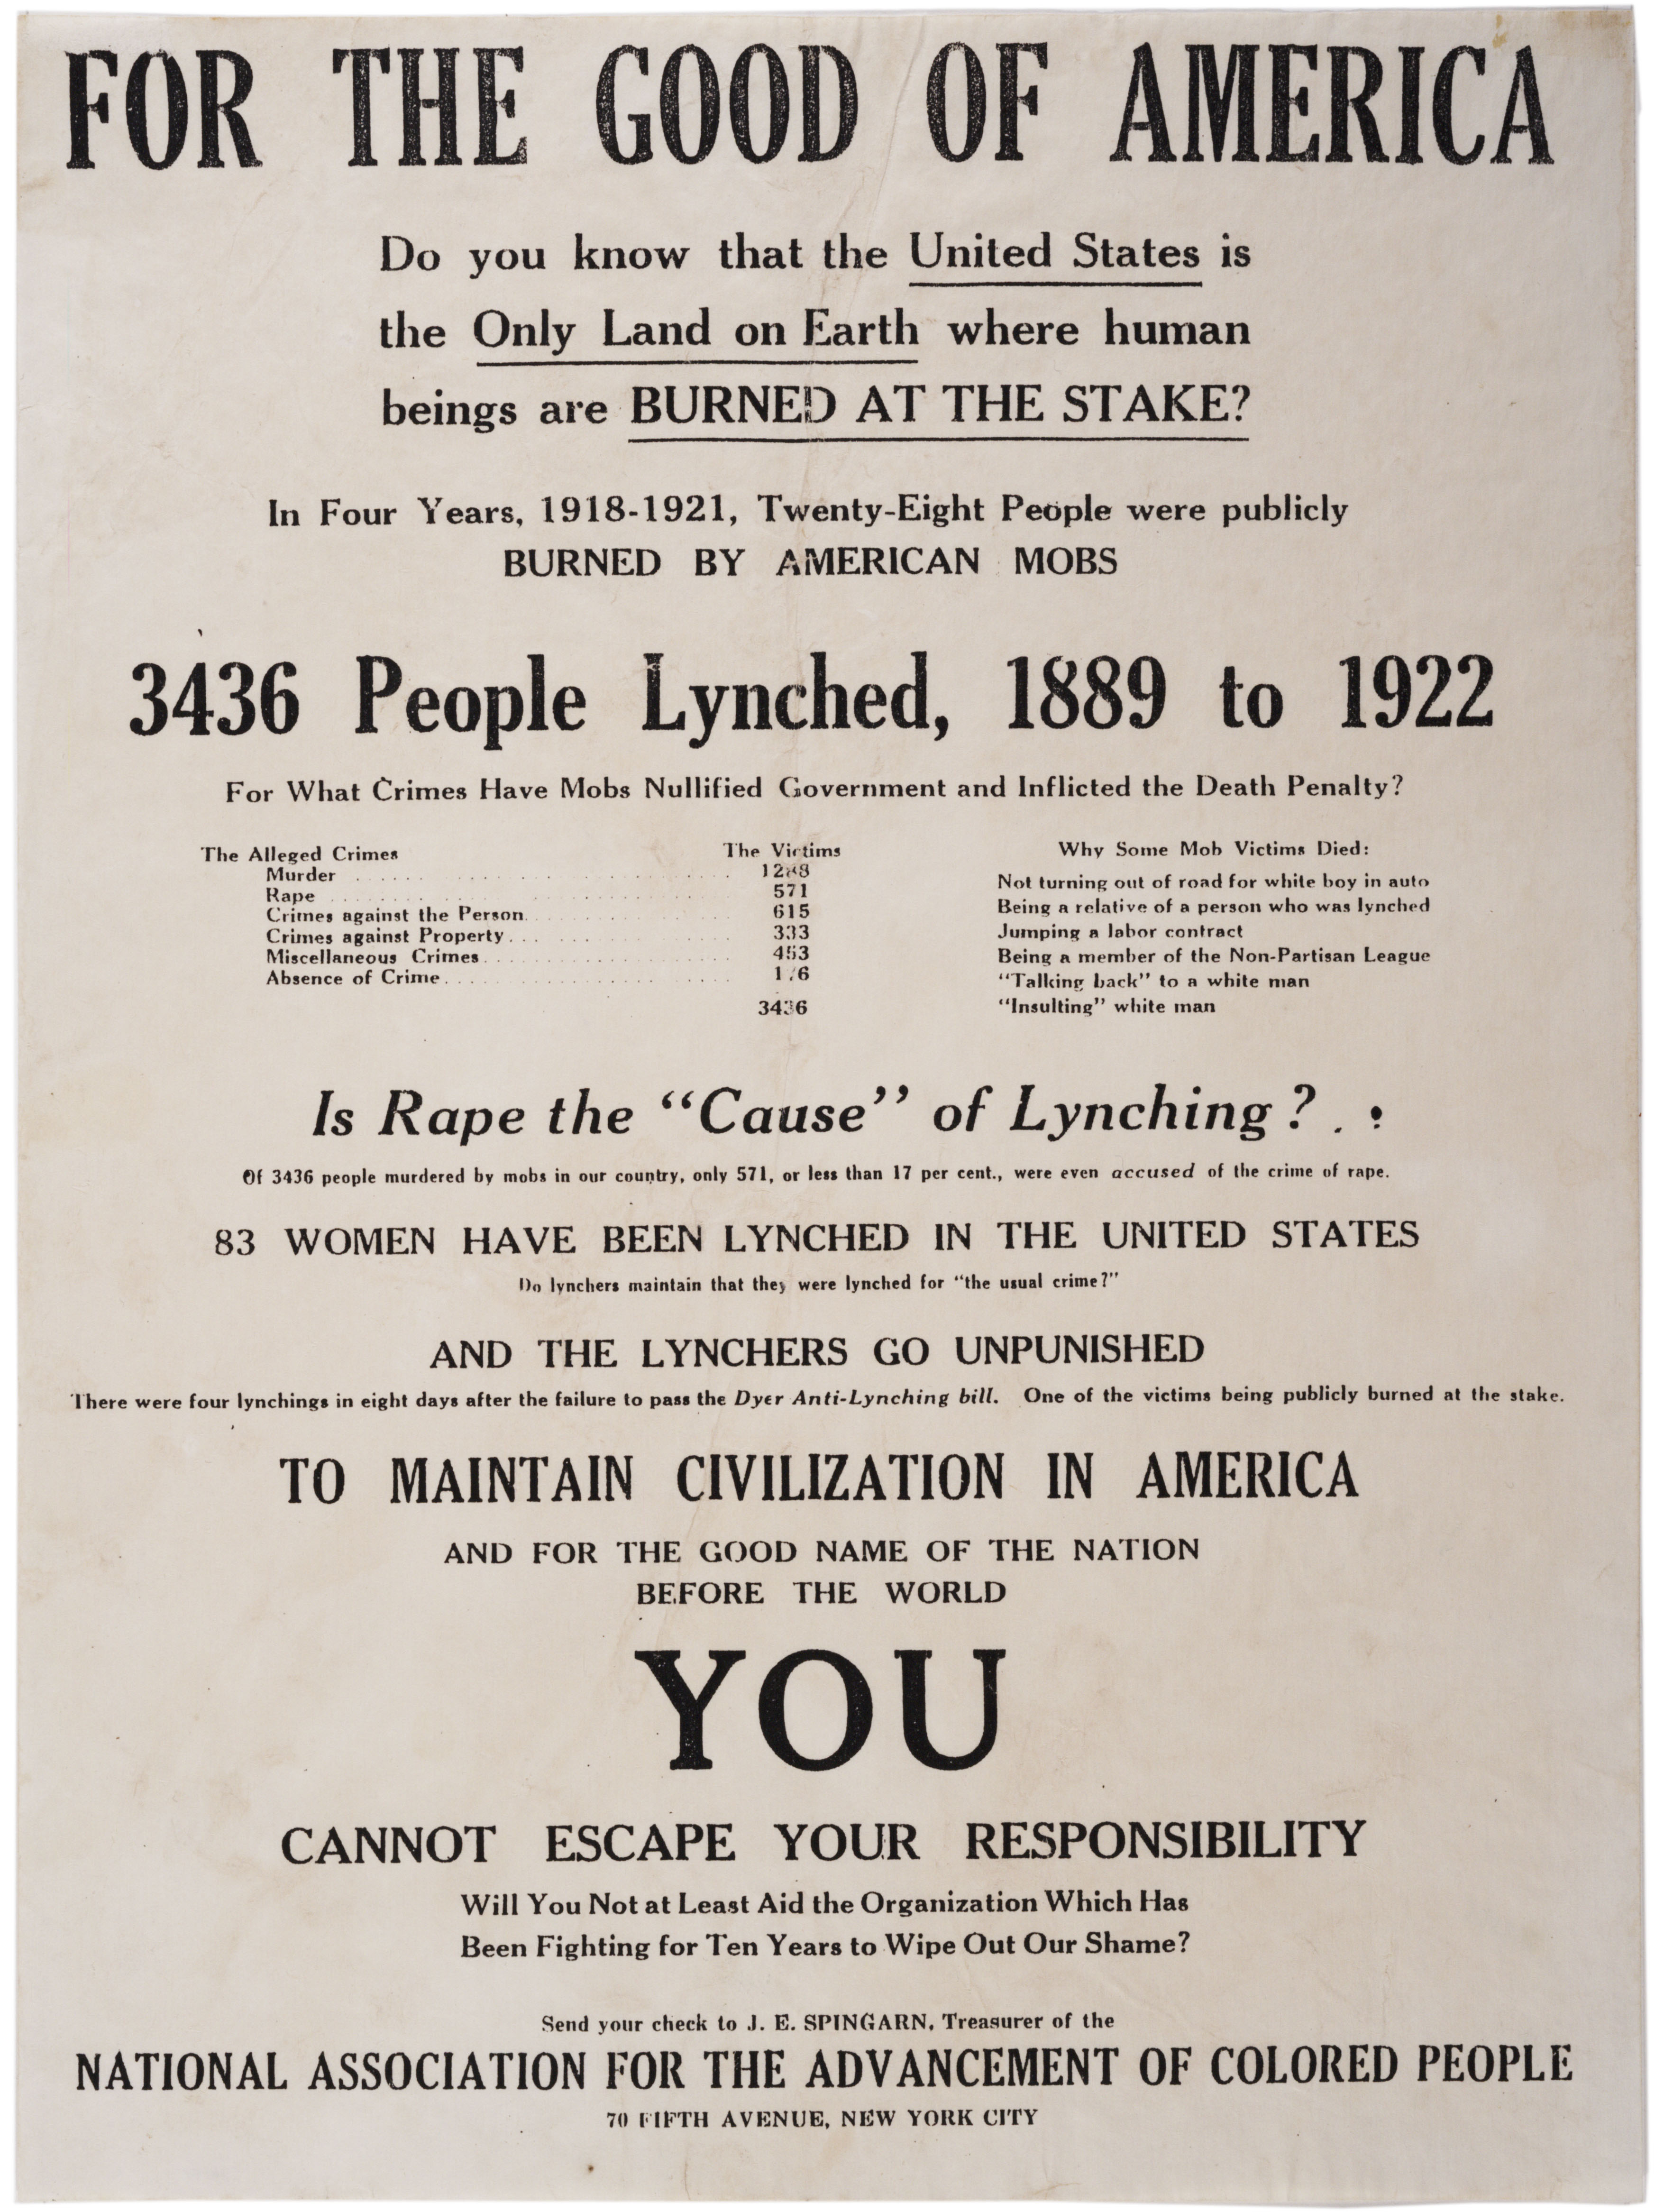 """NAACP, """"For the Good of America"""" broadside, ca. 1926. (Gilder Lehrman Collection"""